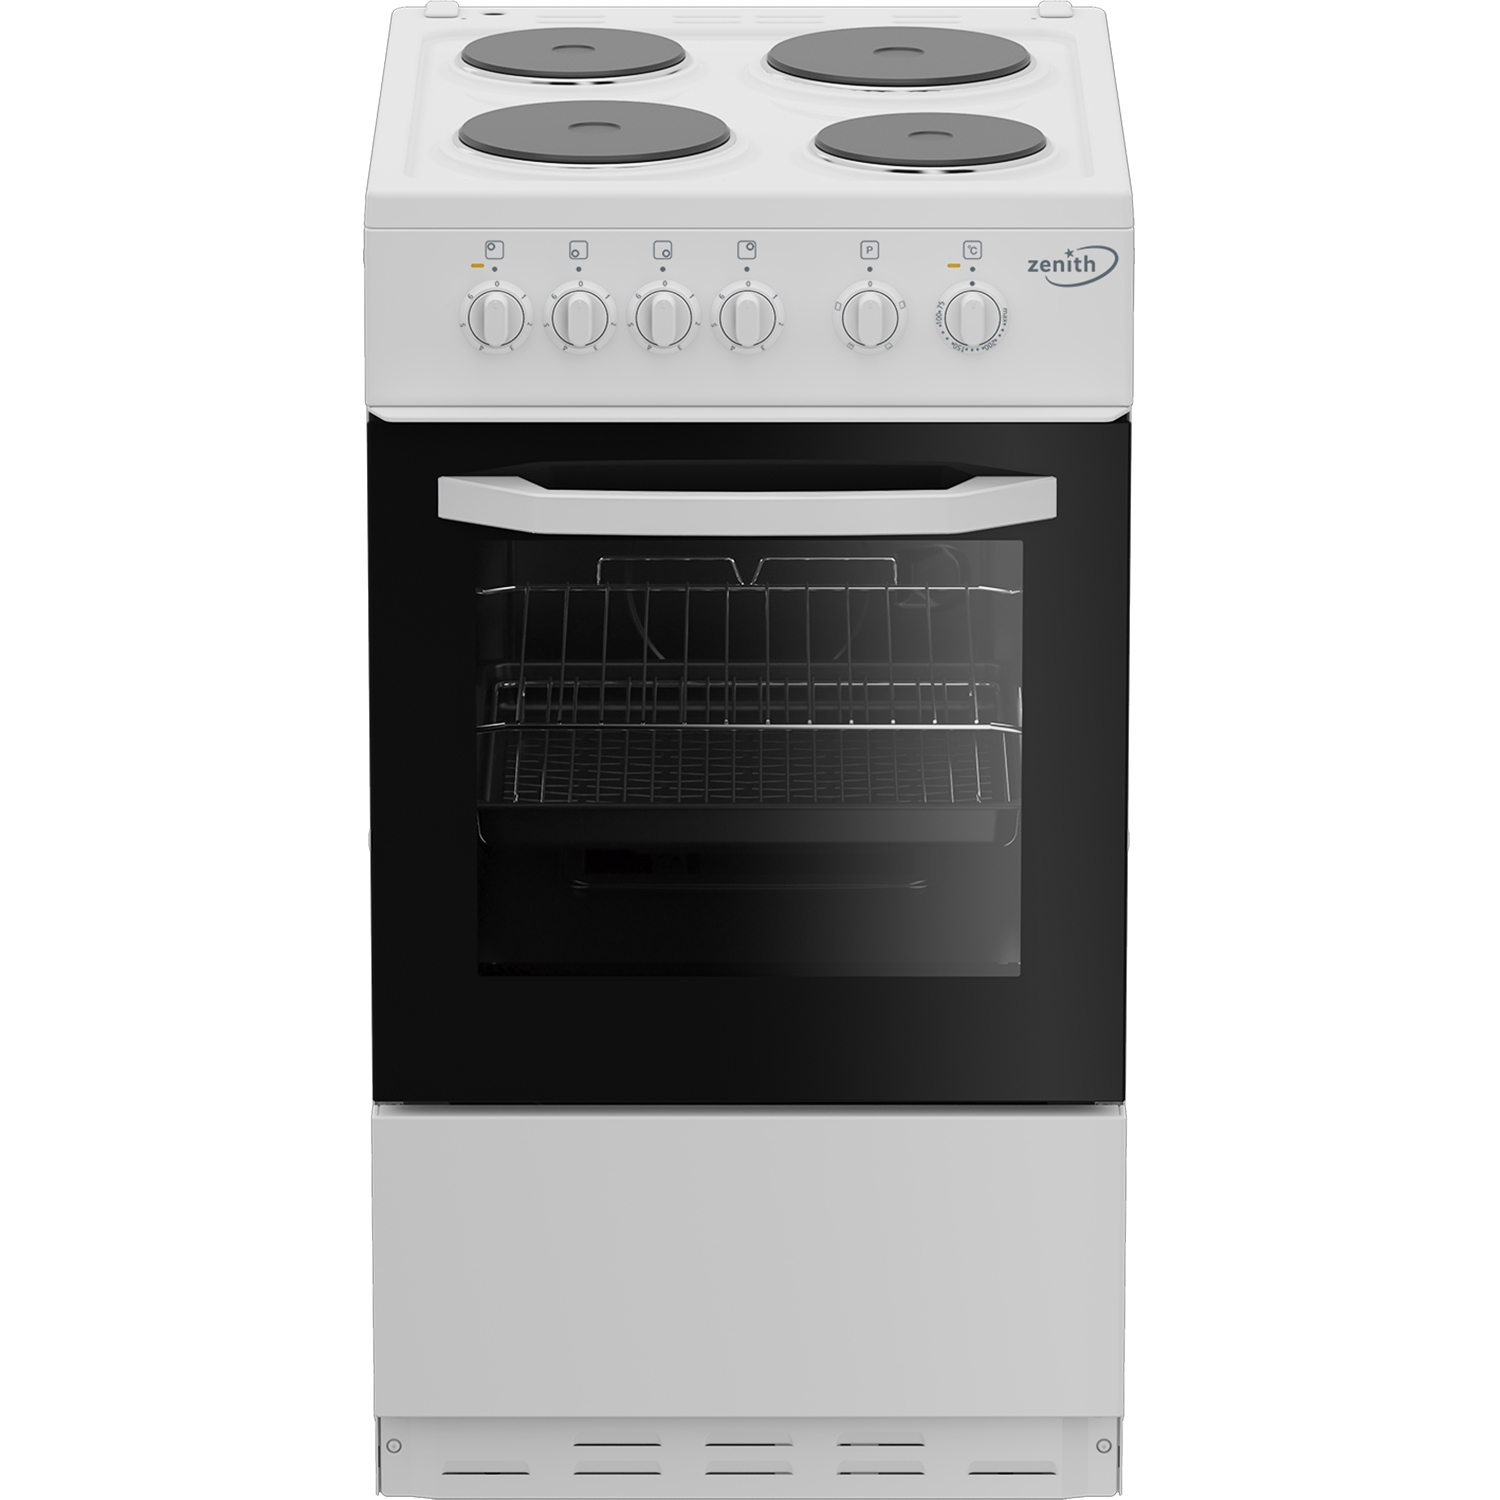 Zenith 50cm Single Oven Electric Cooker with solid plate - hob White- A Energy Rated - 0